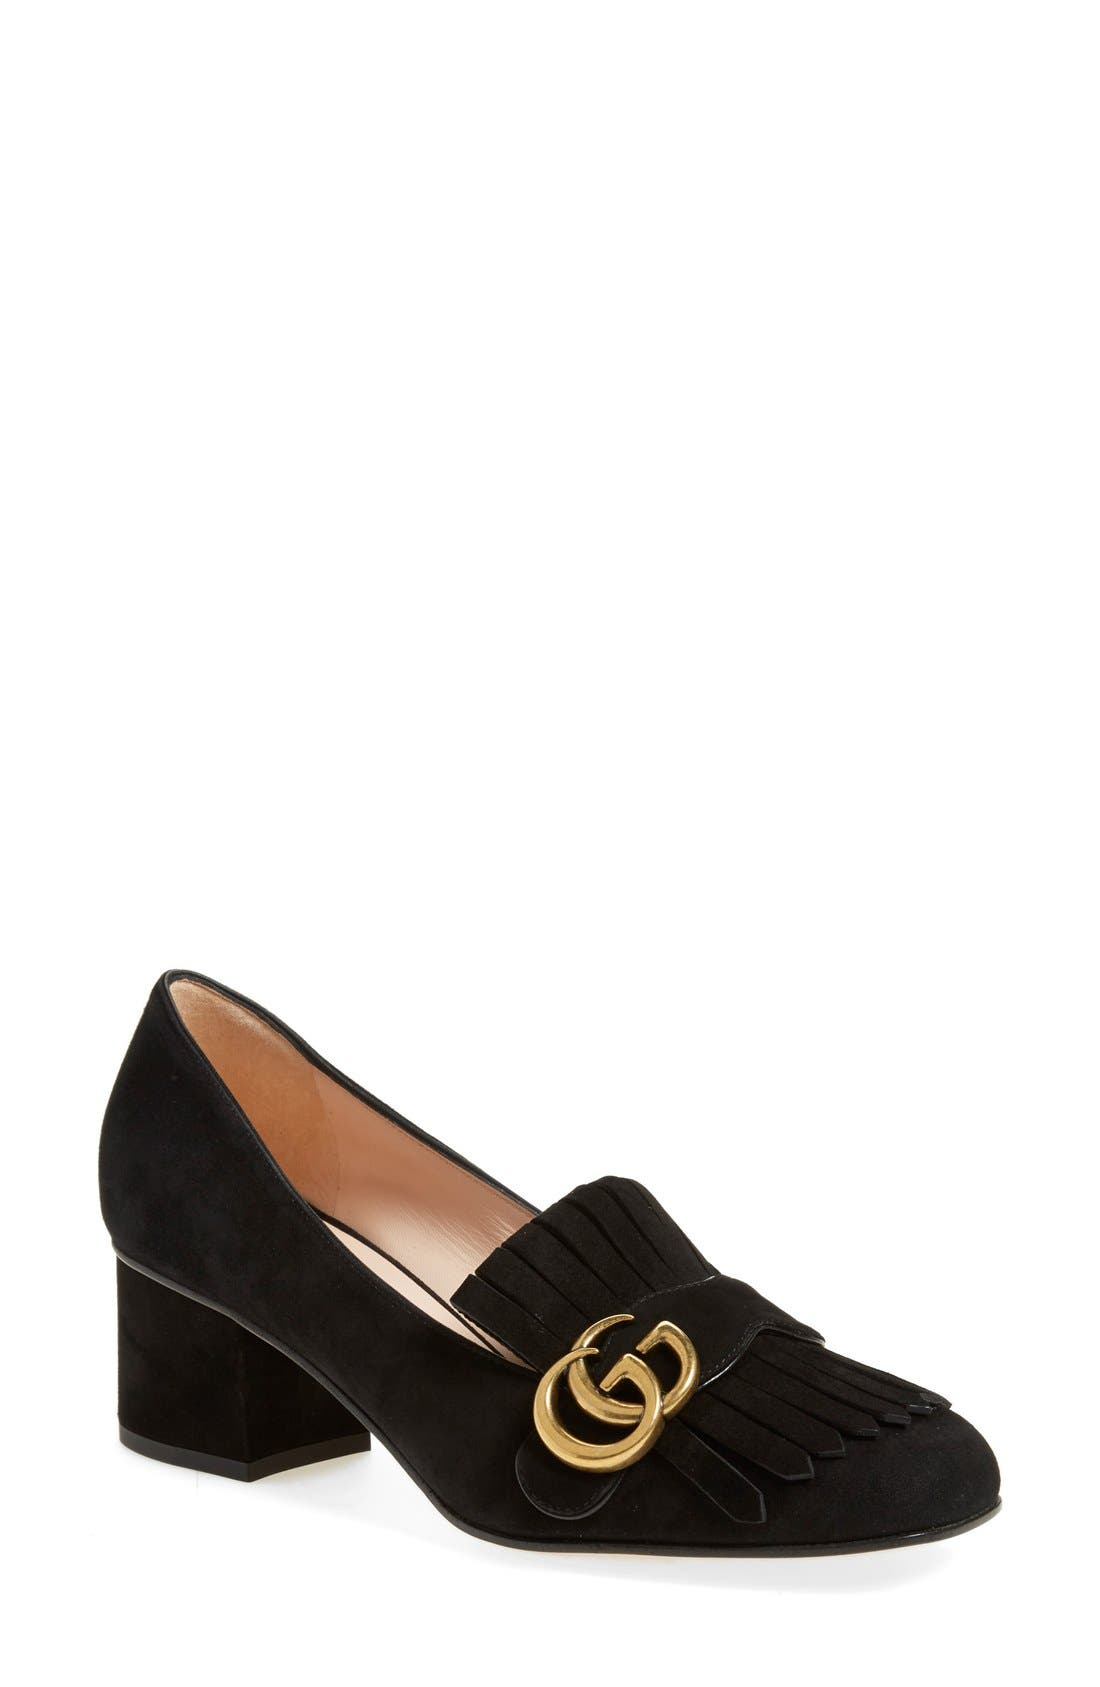 GG Marmont Pump,                             Main thumbnail 1, color,                             BLACK SUEDE